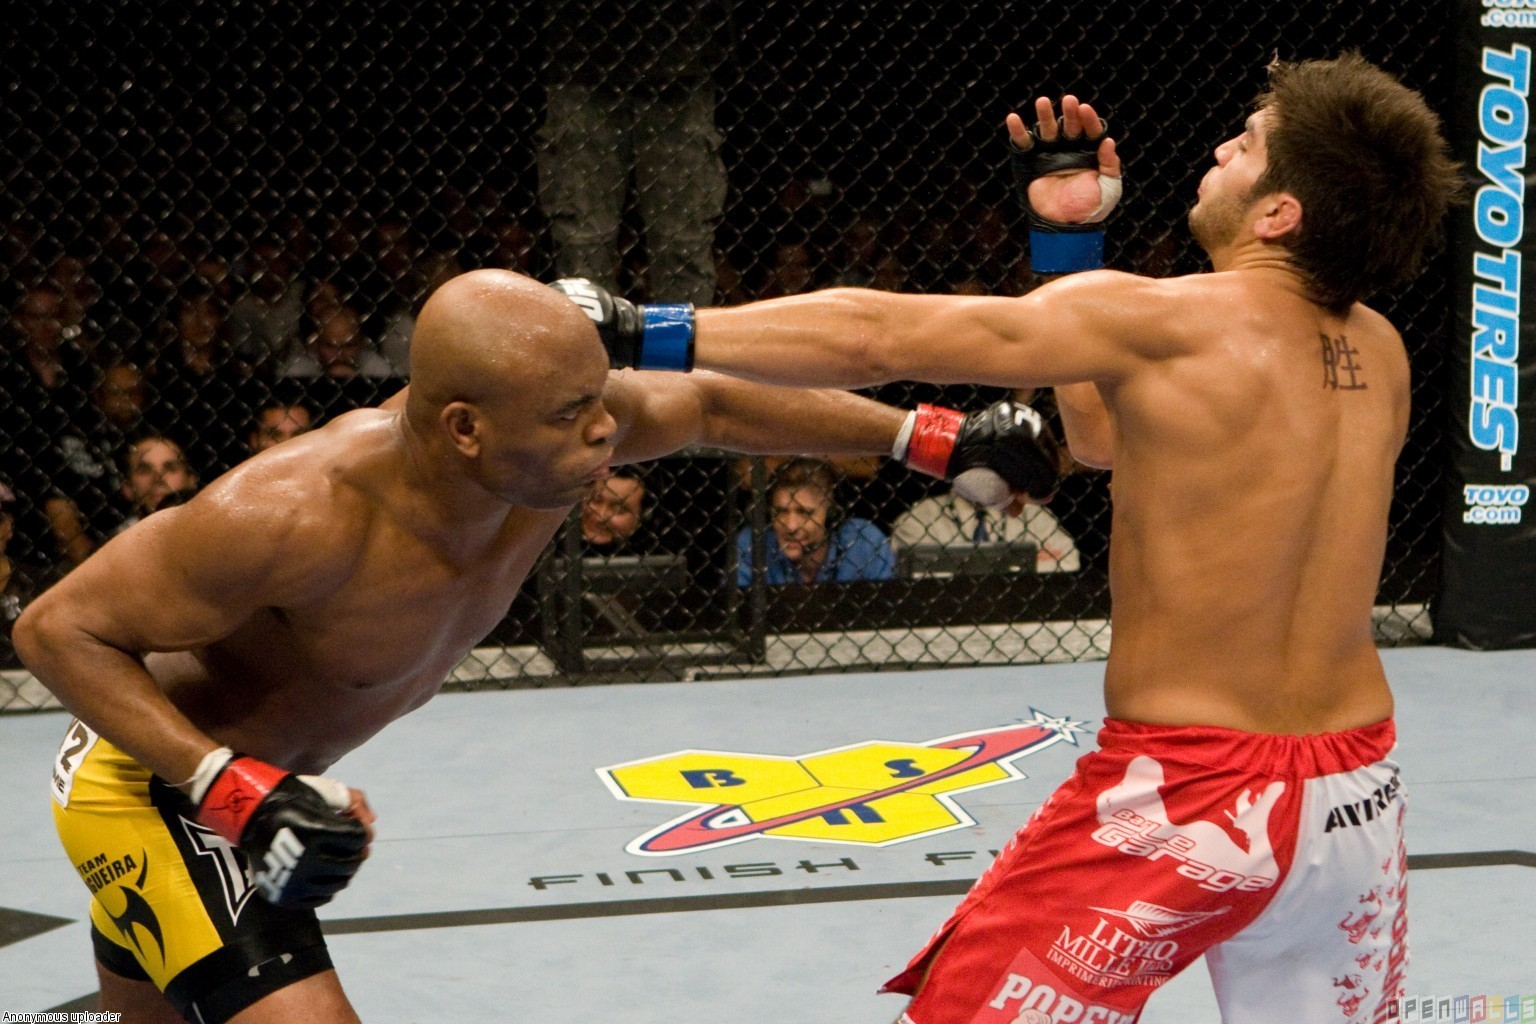 Ufc 90 anderson silva vs patrick cote wallpaper 4382   Open Walls 1536x1024